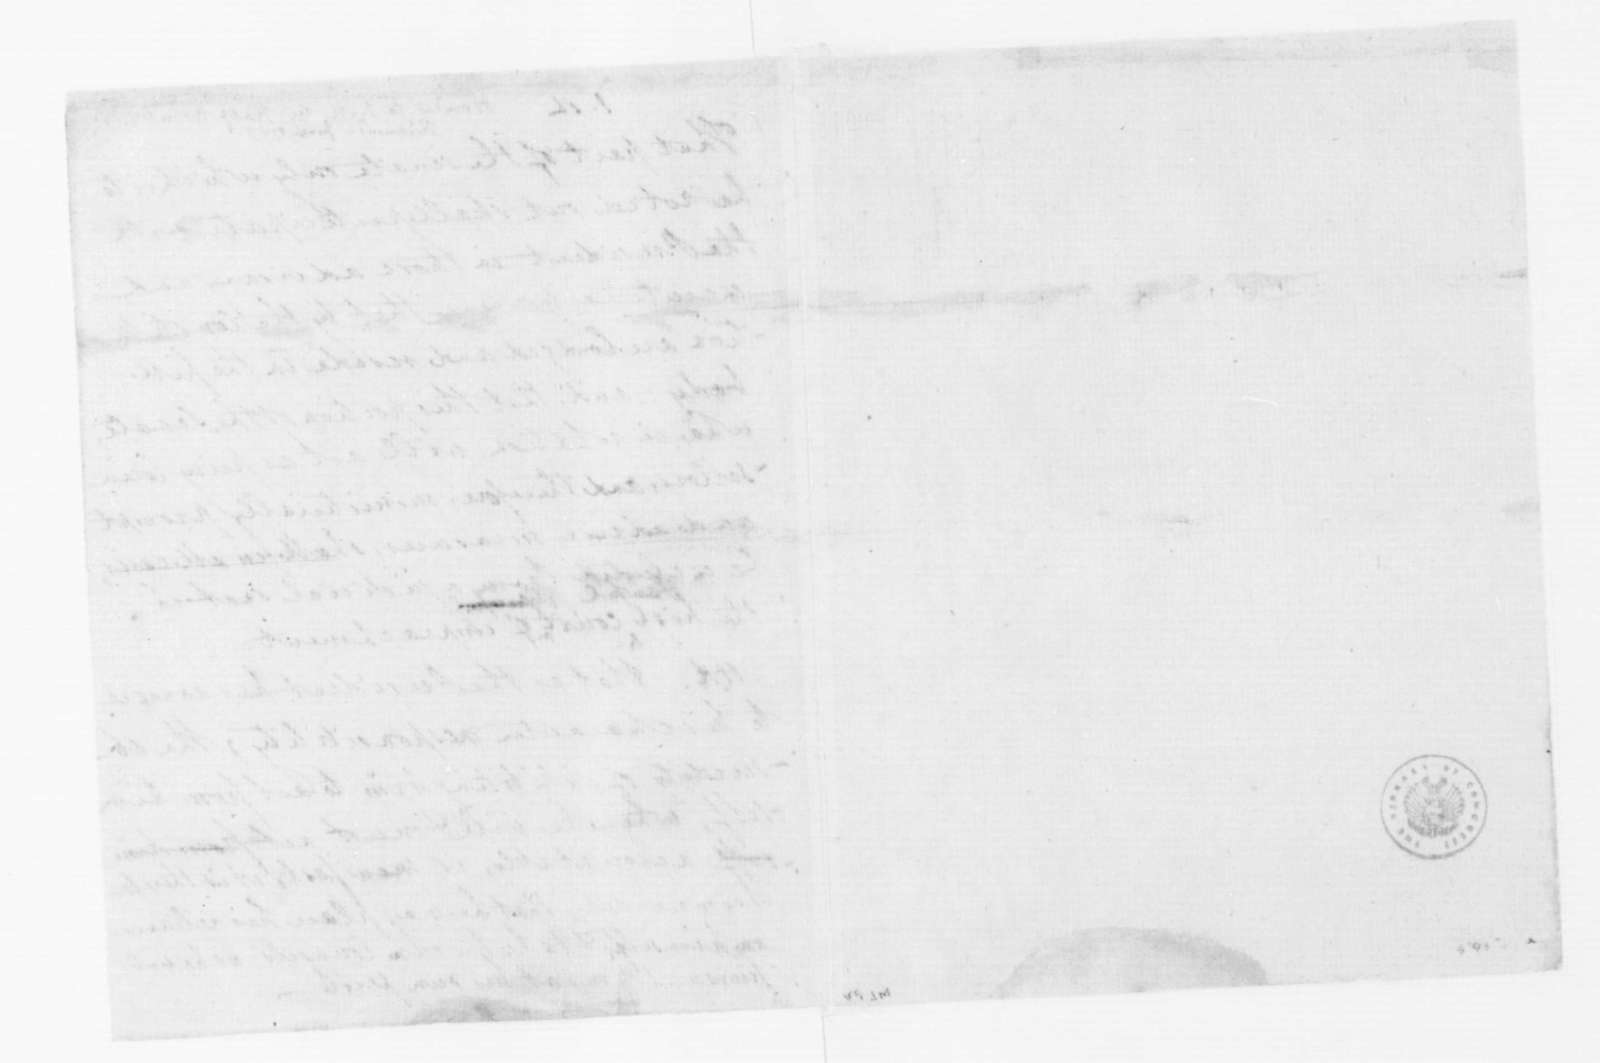 Ralph Wormeley Jr. to James Madison, June, 1788. Notes, Virginia Convention on the Federal Constitution.